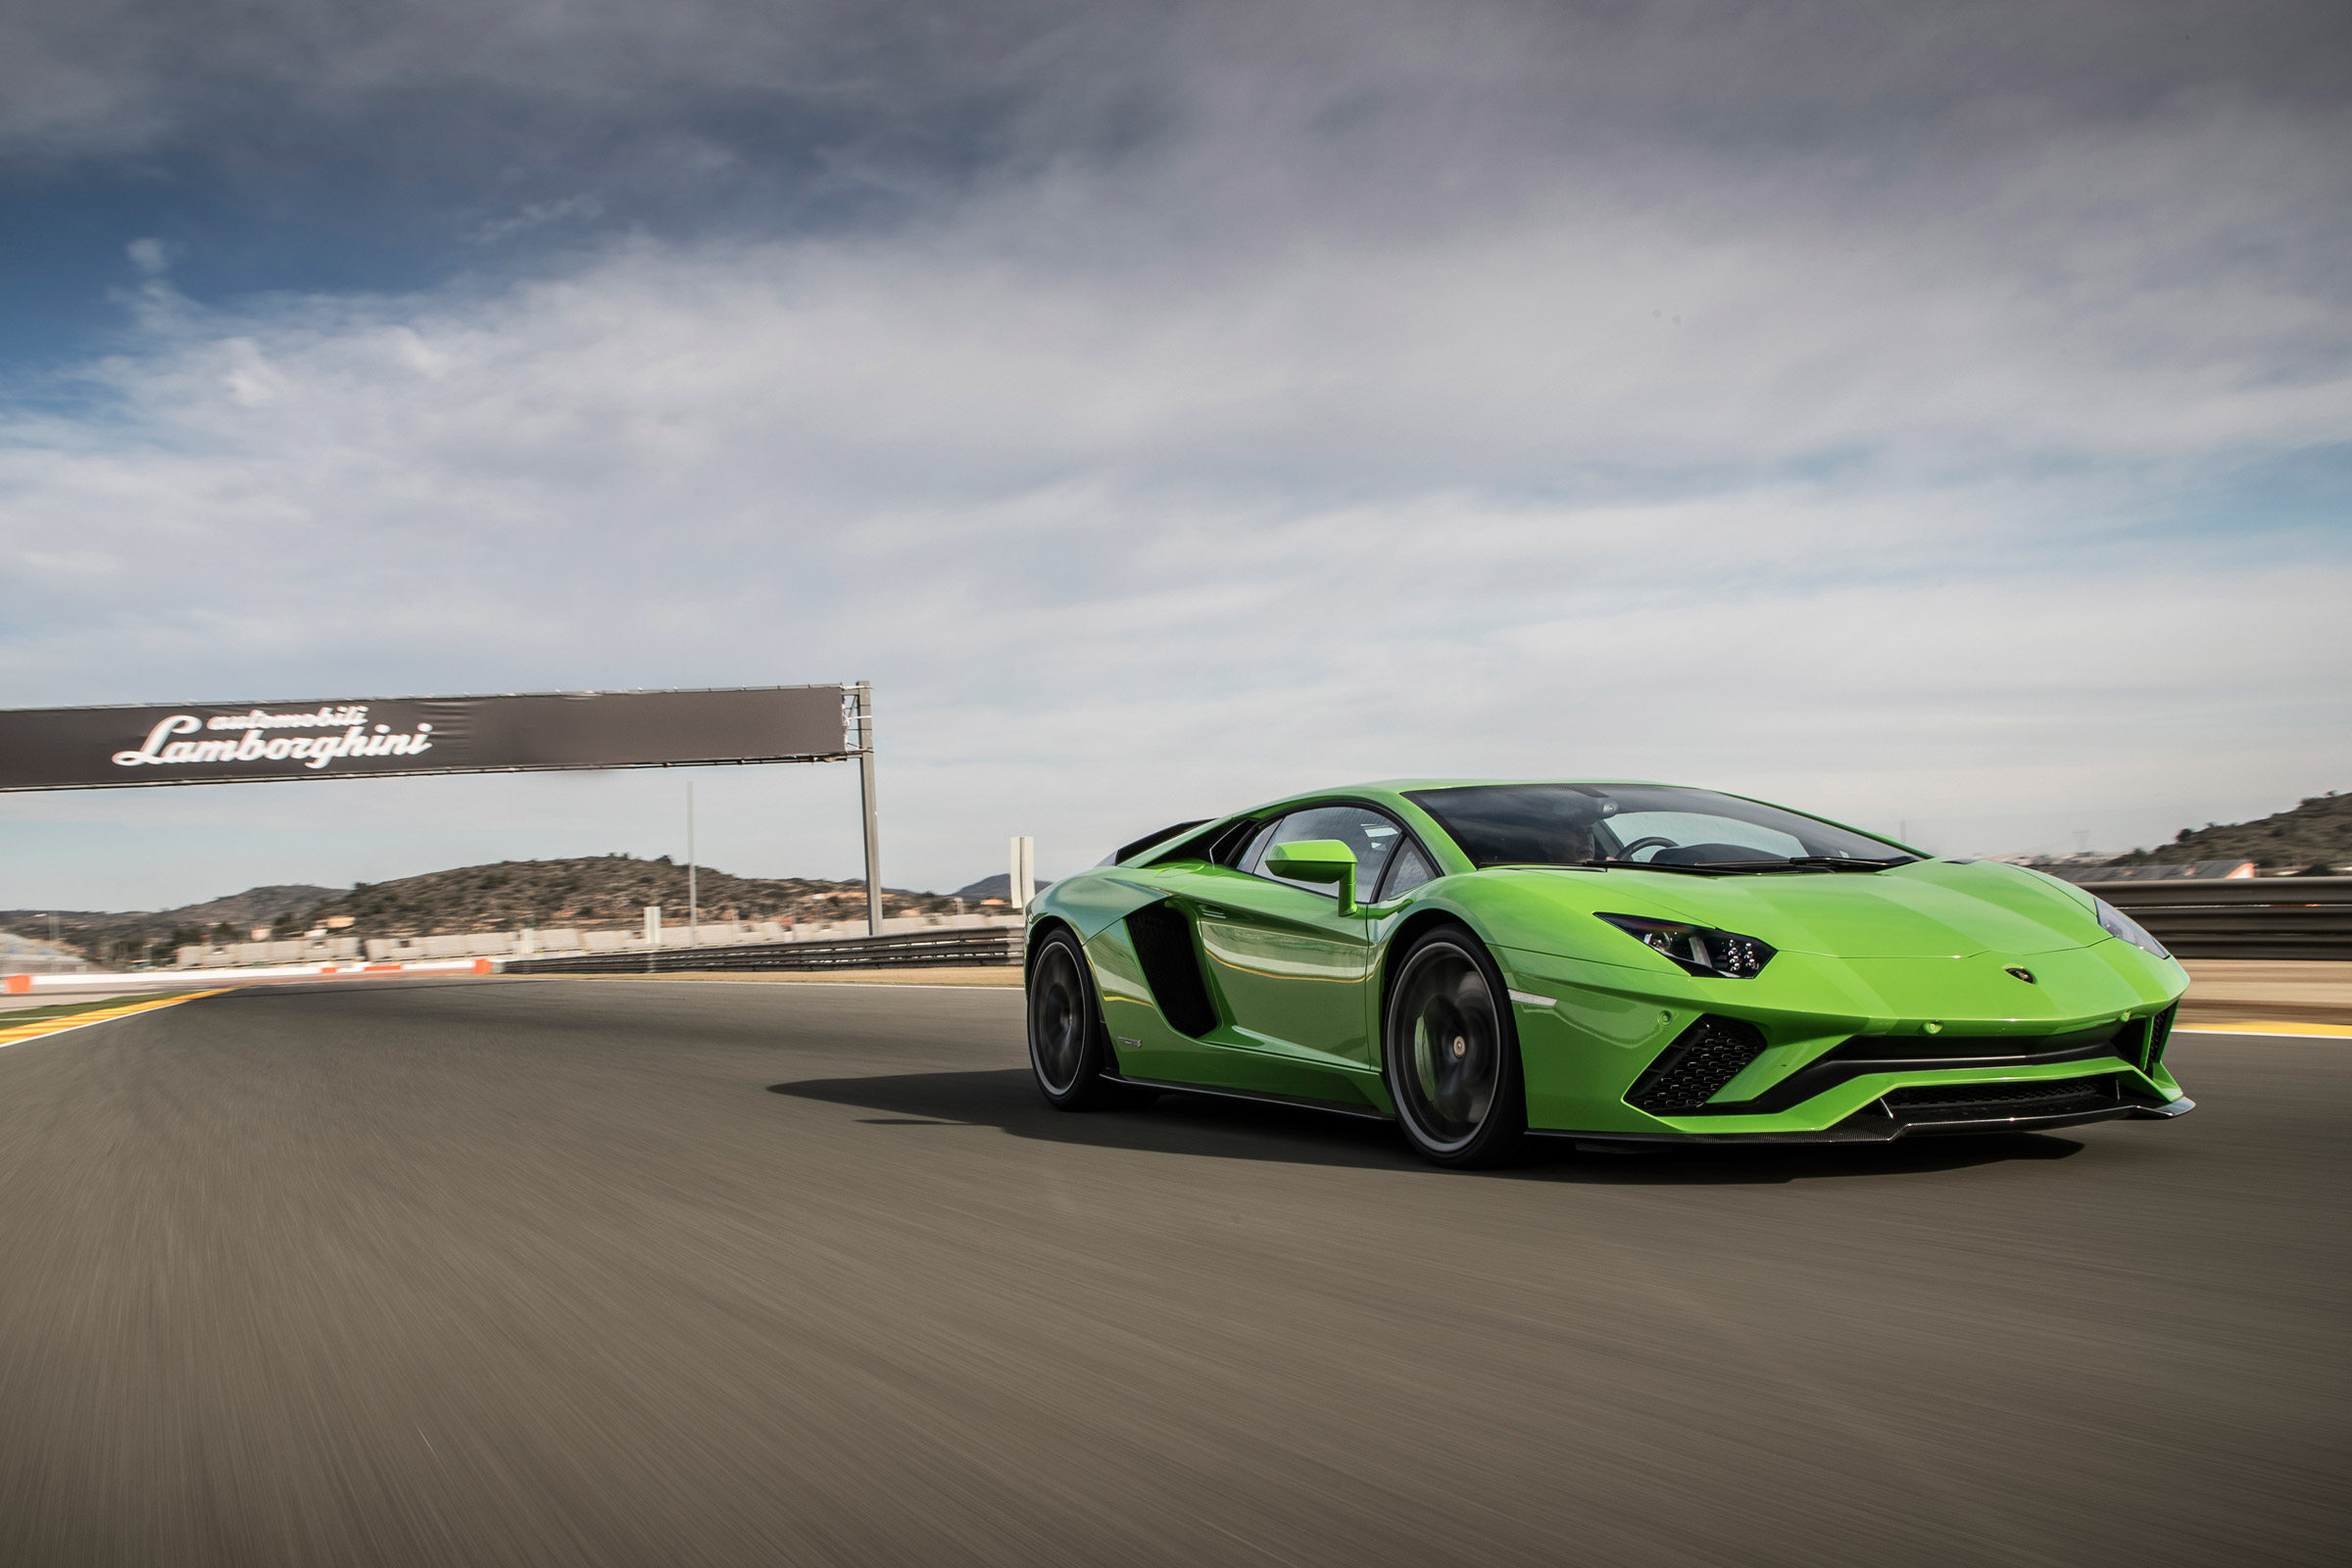 2017 Lamborghini Aventador S Circuit Test Front View (Photo 3 of 20)